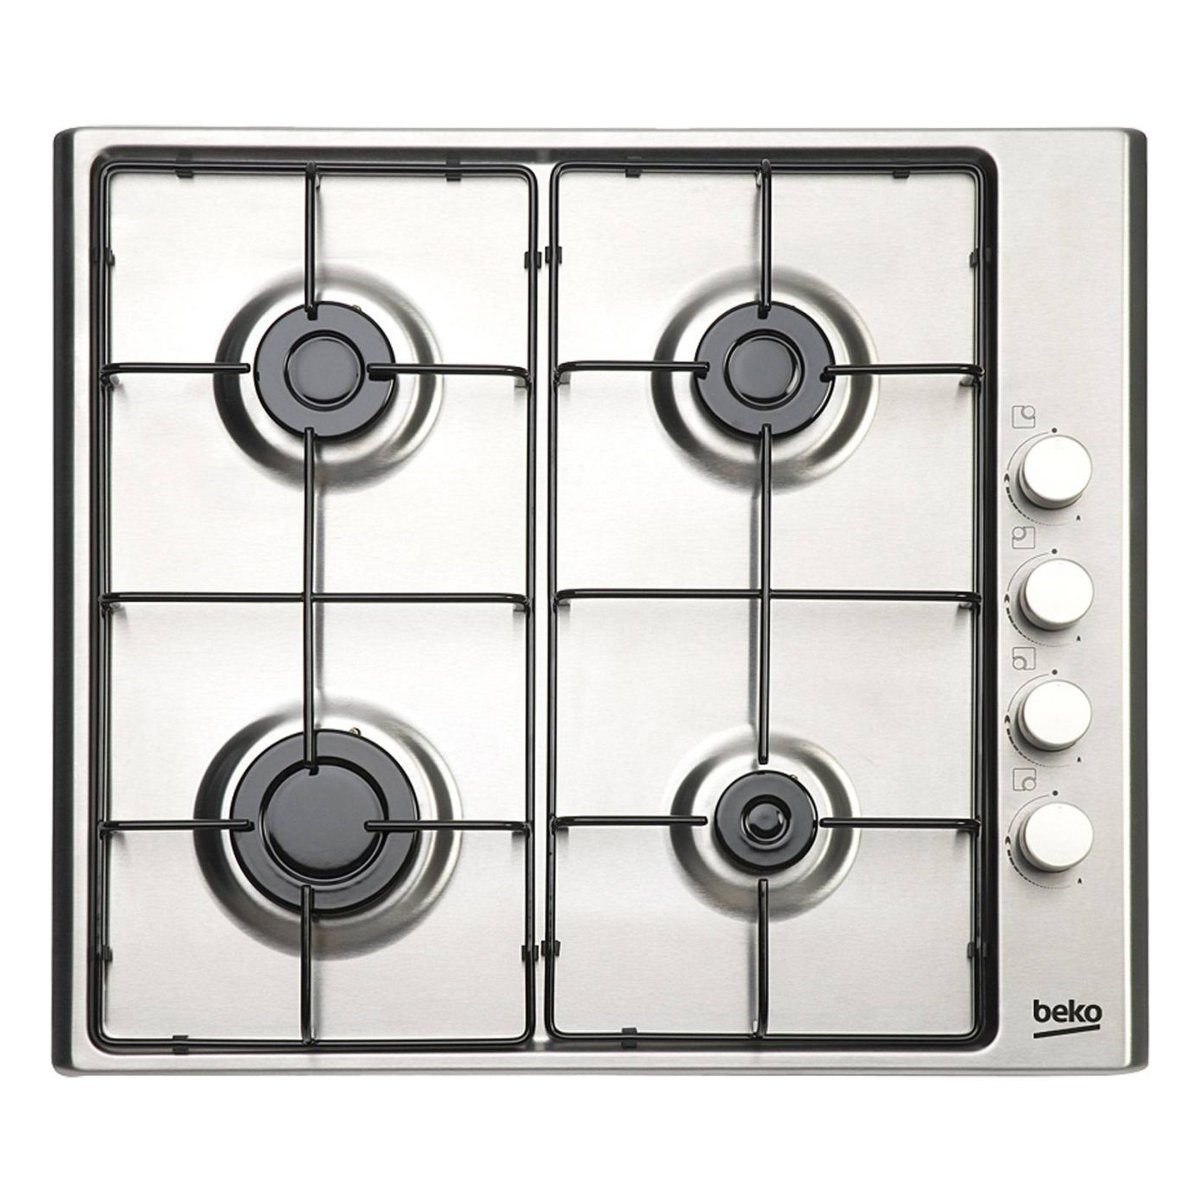 Beko HIZG64120SW Built-in Gas Hob White Hob – Plate (Built-in, Gas Hob, White, 1000 W, 2000 W, 2900 W)